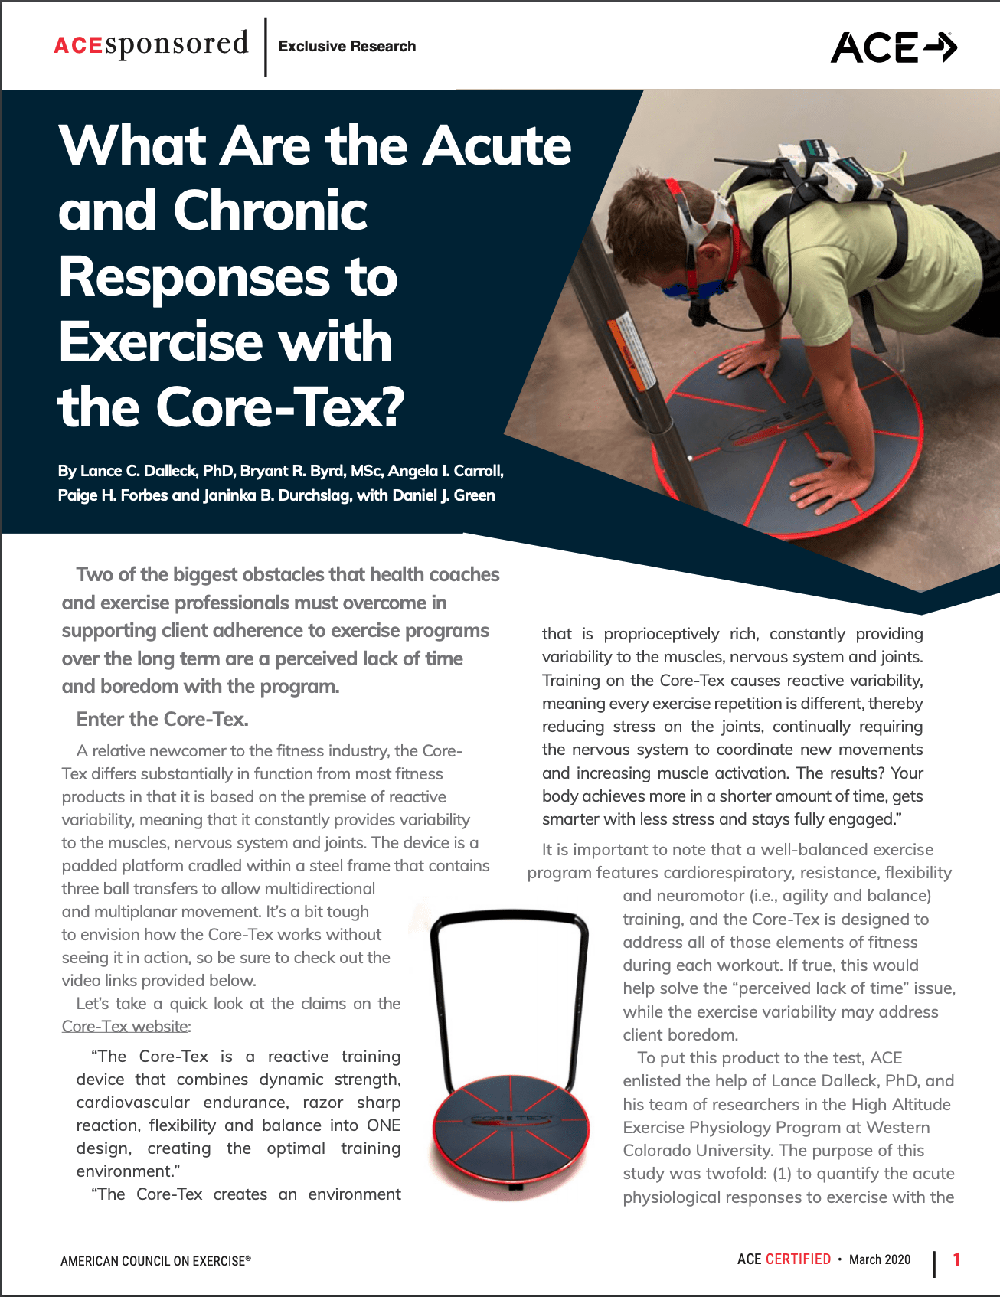 American Council on Exercise article on acute and chronic responses to exercise with the Core-Tex